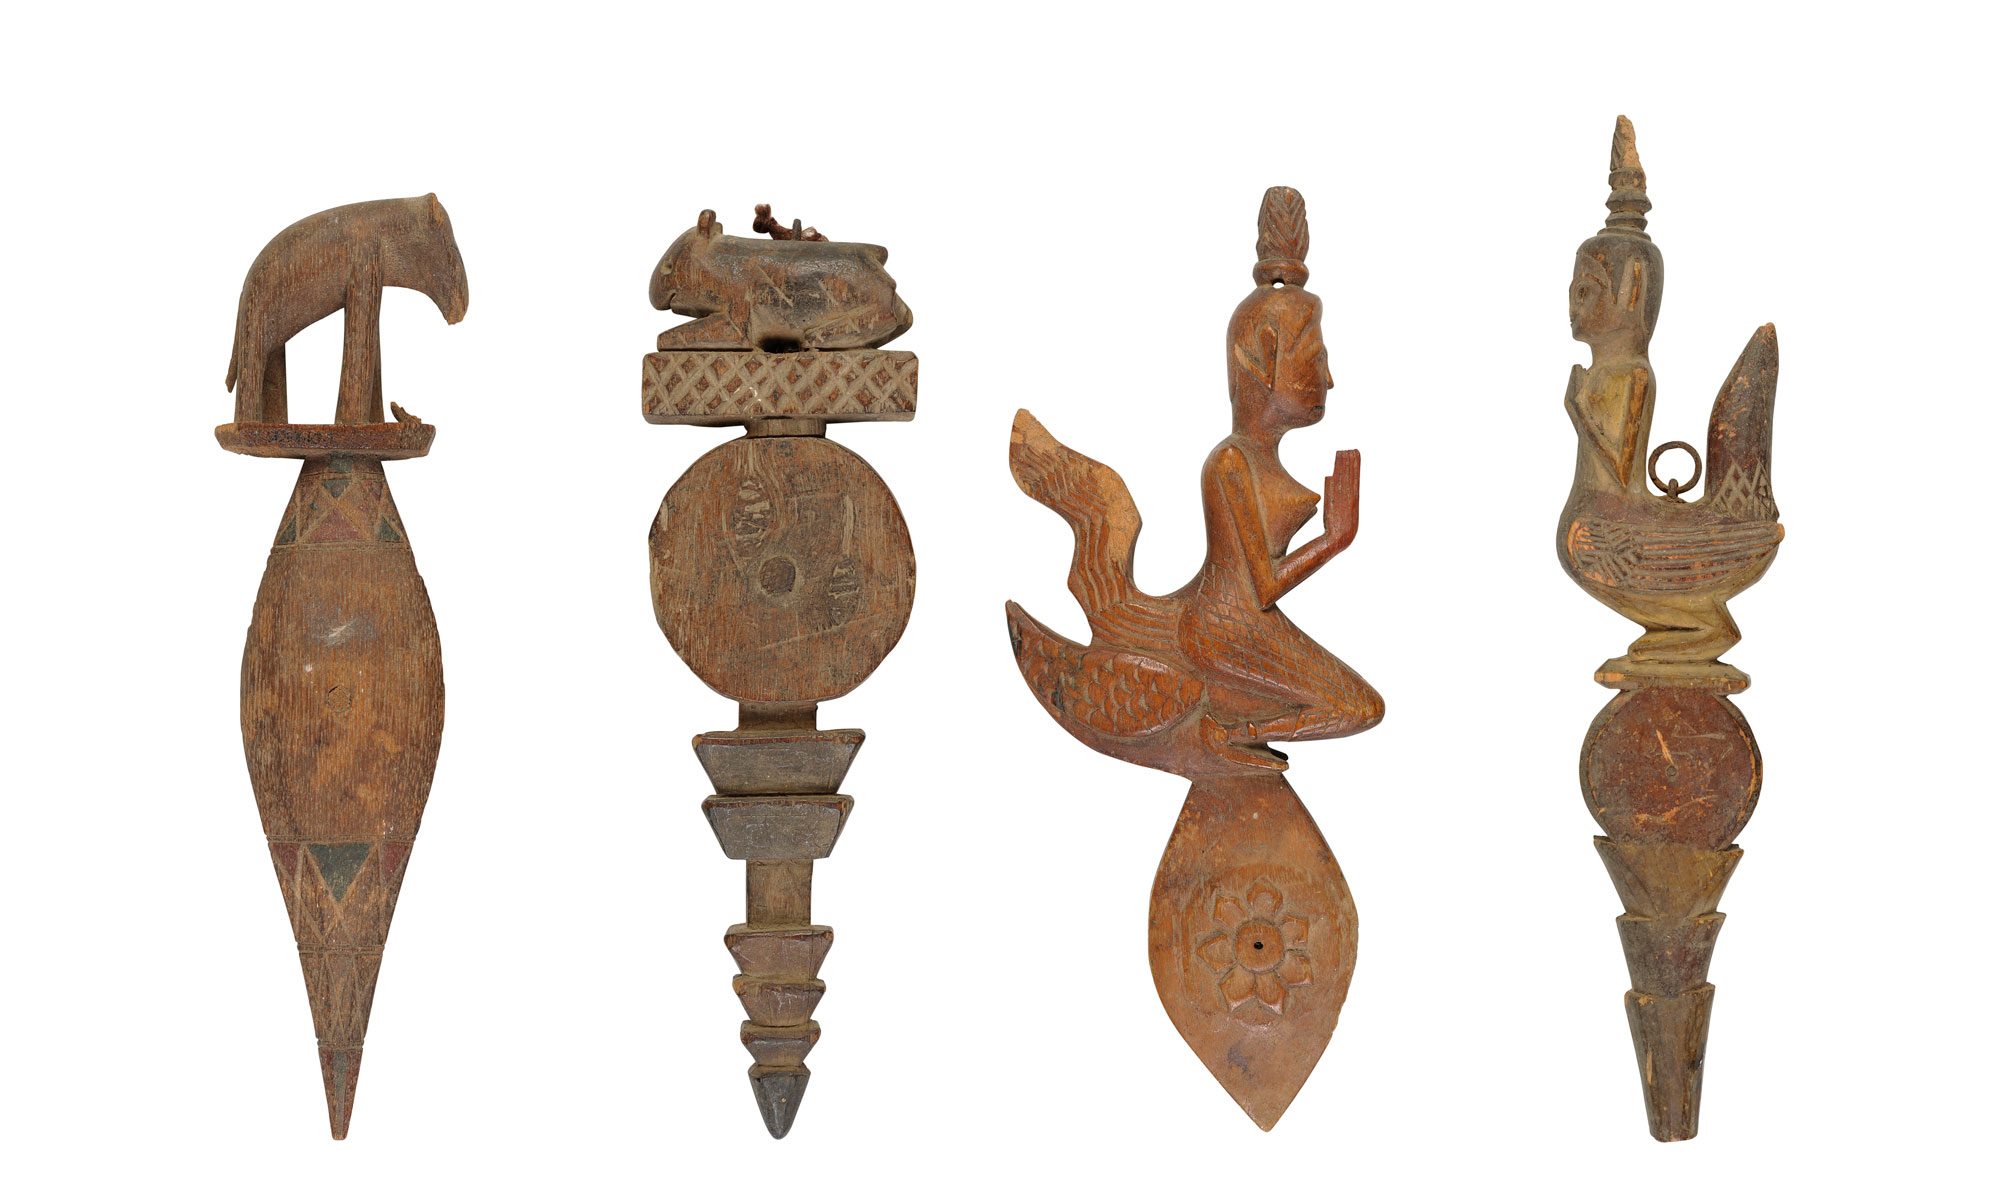 Wooden figures carved into different shapes. There are four and all have a circular, spoon like quality to them